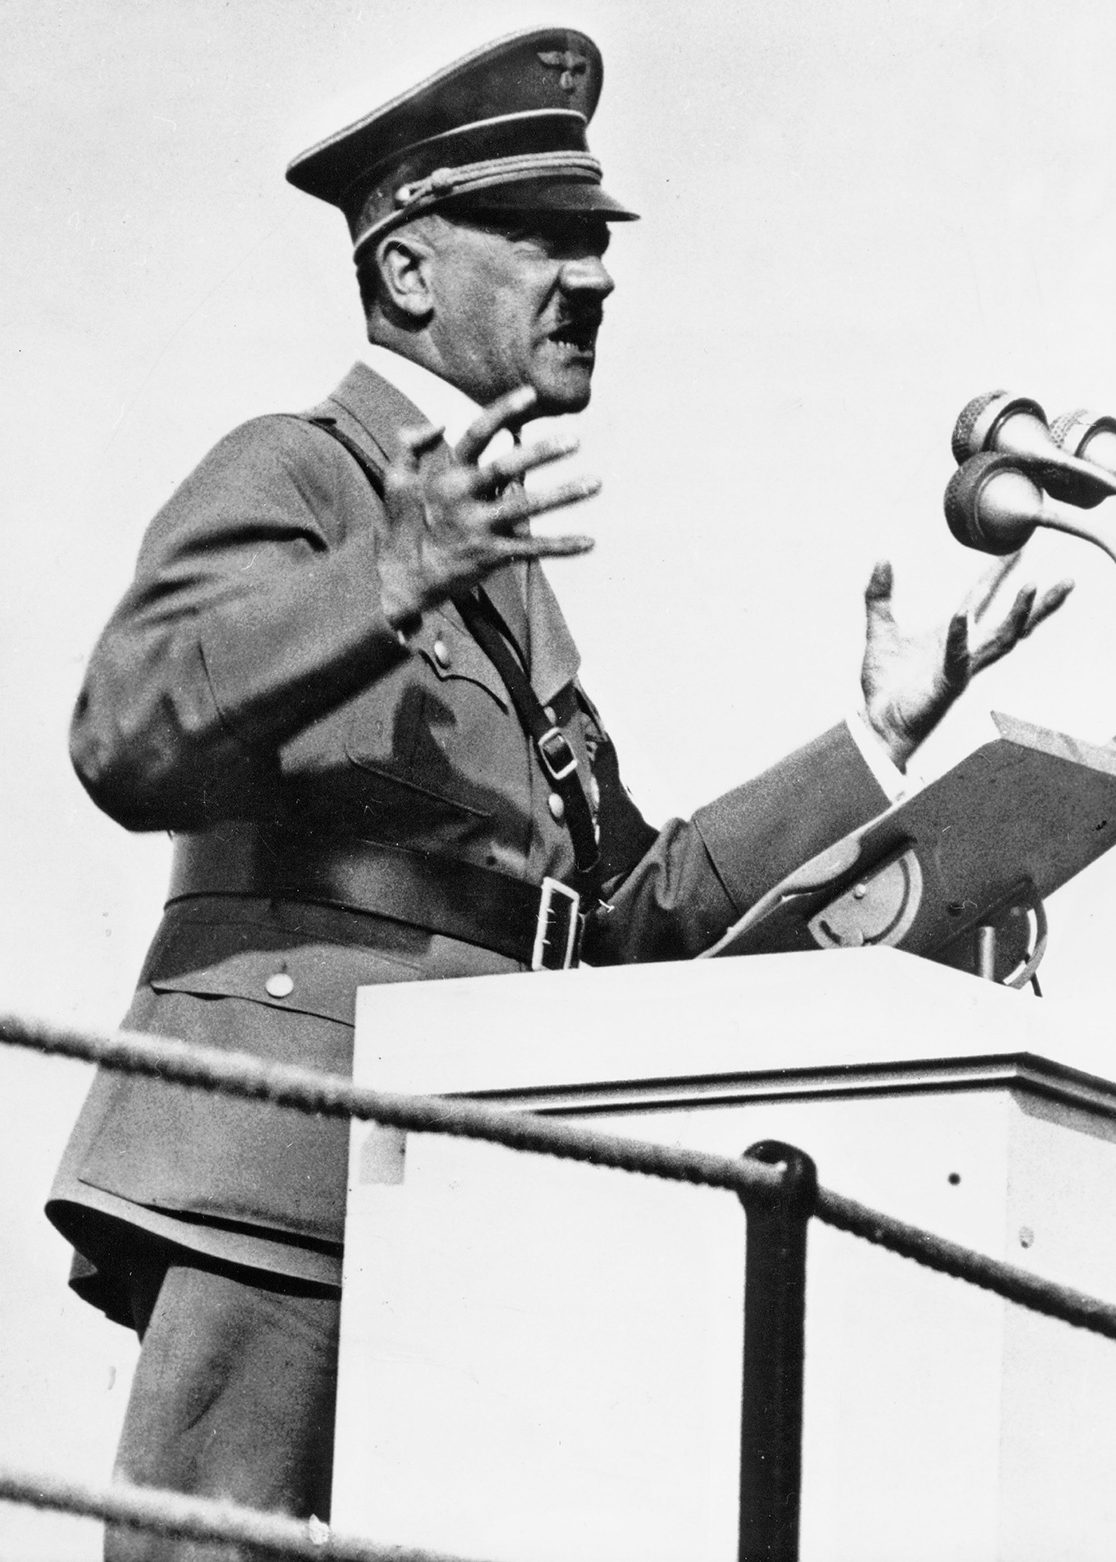 an analysis of adolph hitler of germany in the first world war 40 adolf hitler quotes on war, politics, nationalism, and lies updated: august 11, 2018 / home » quotes [ top tumblr inspirational, love & life ] love him hate him, adolf hitler will always be a hero to the few in today's modern world, and hated by many.